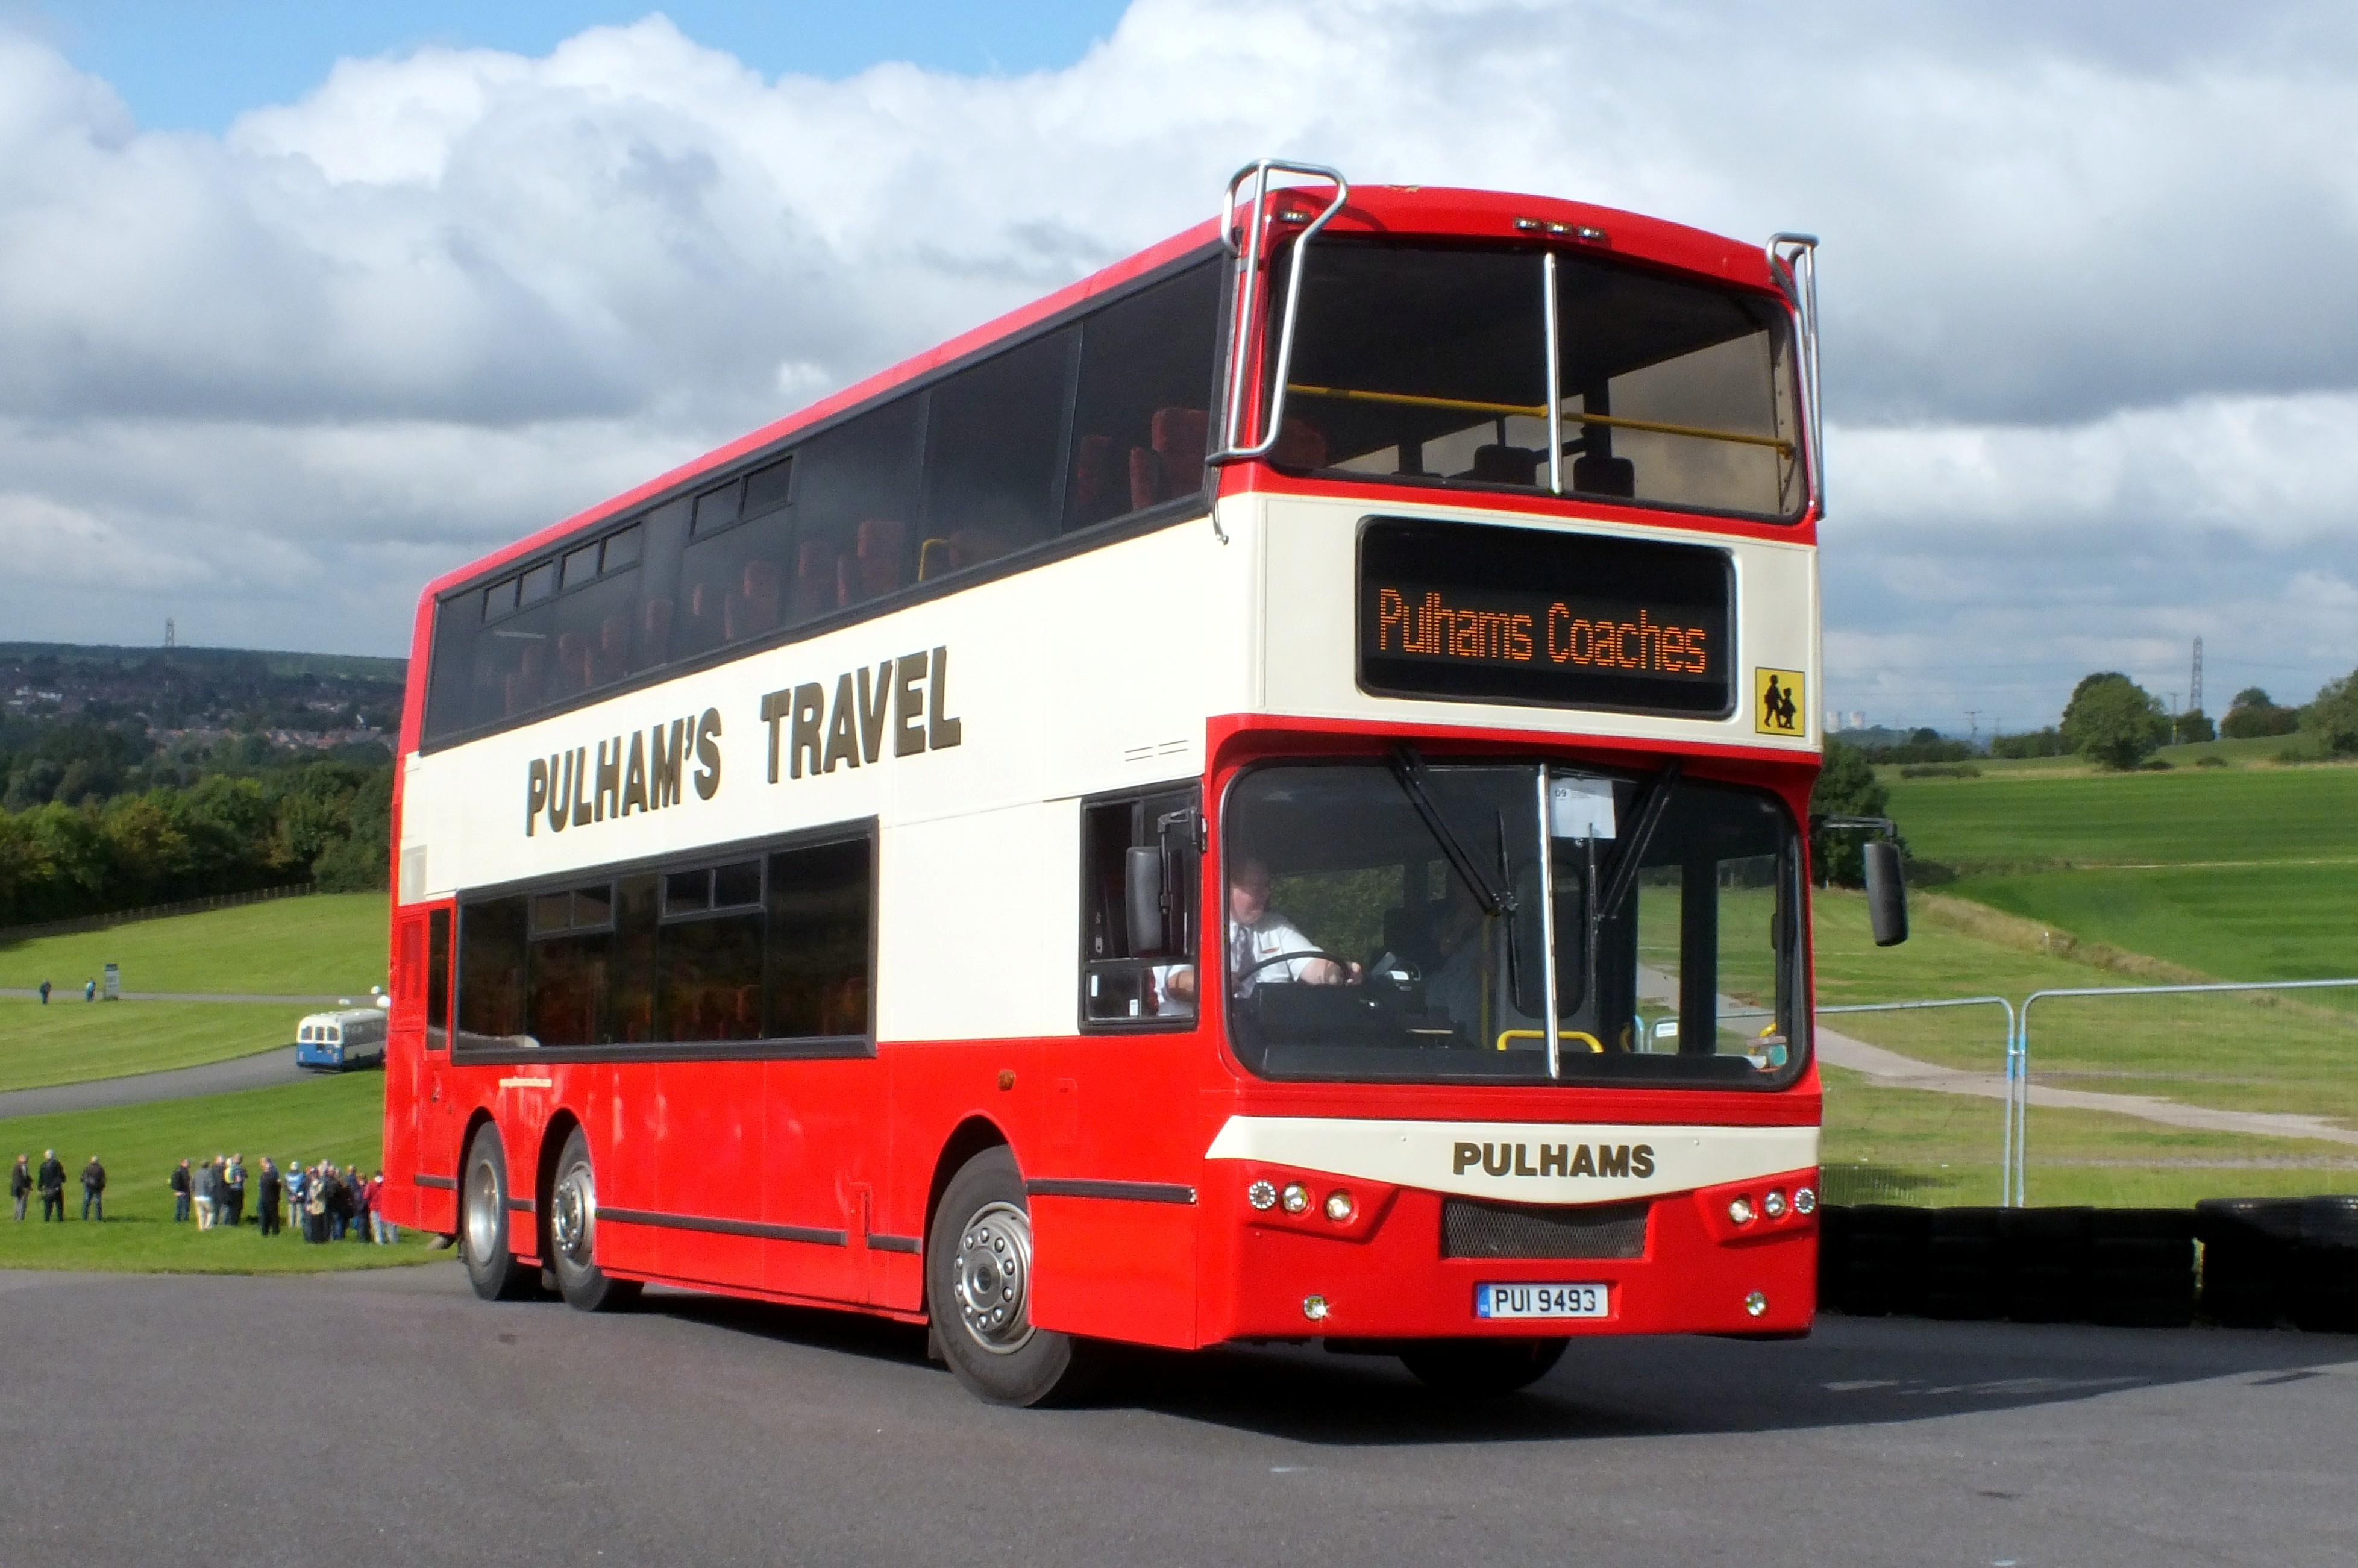 17 September 2017 Showbus, Donington. 414.jpg